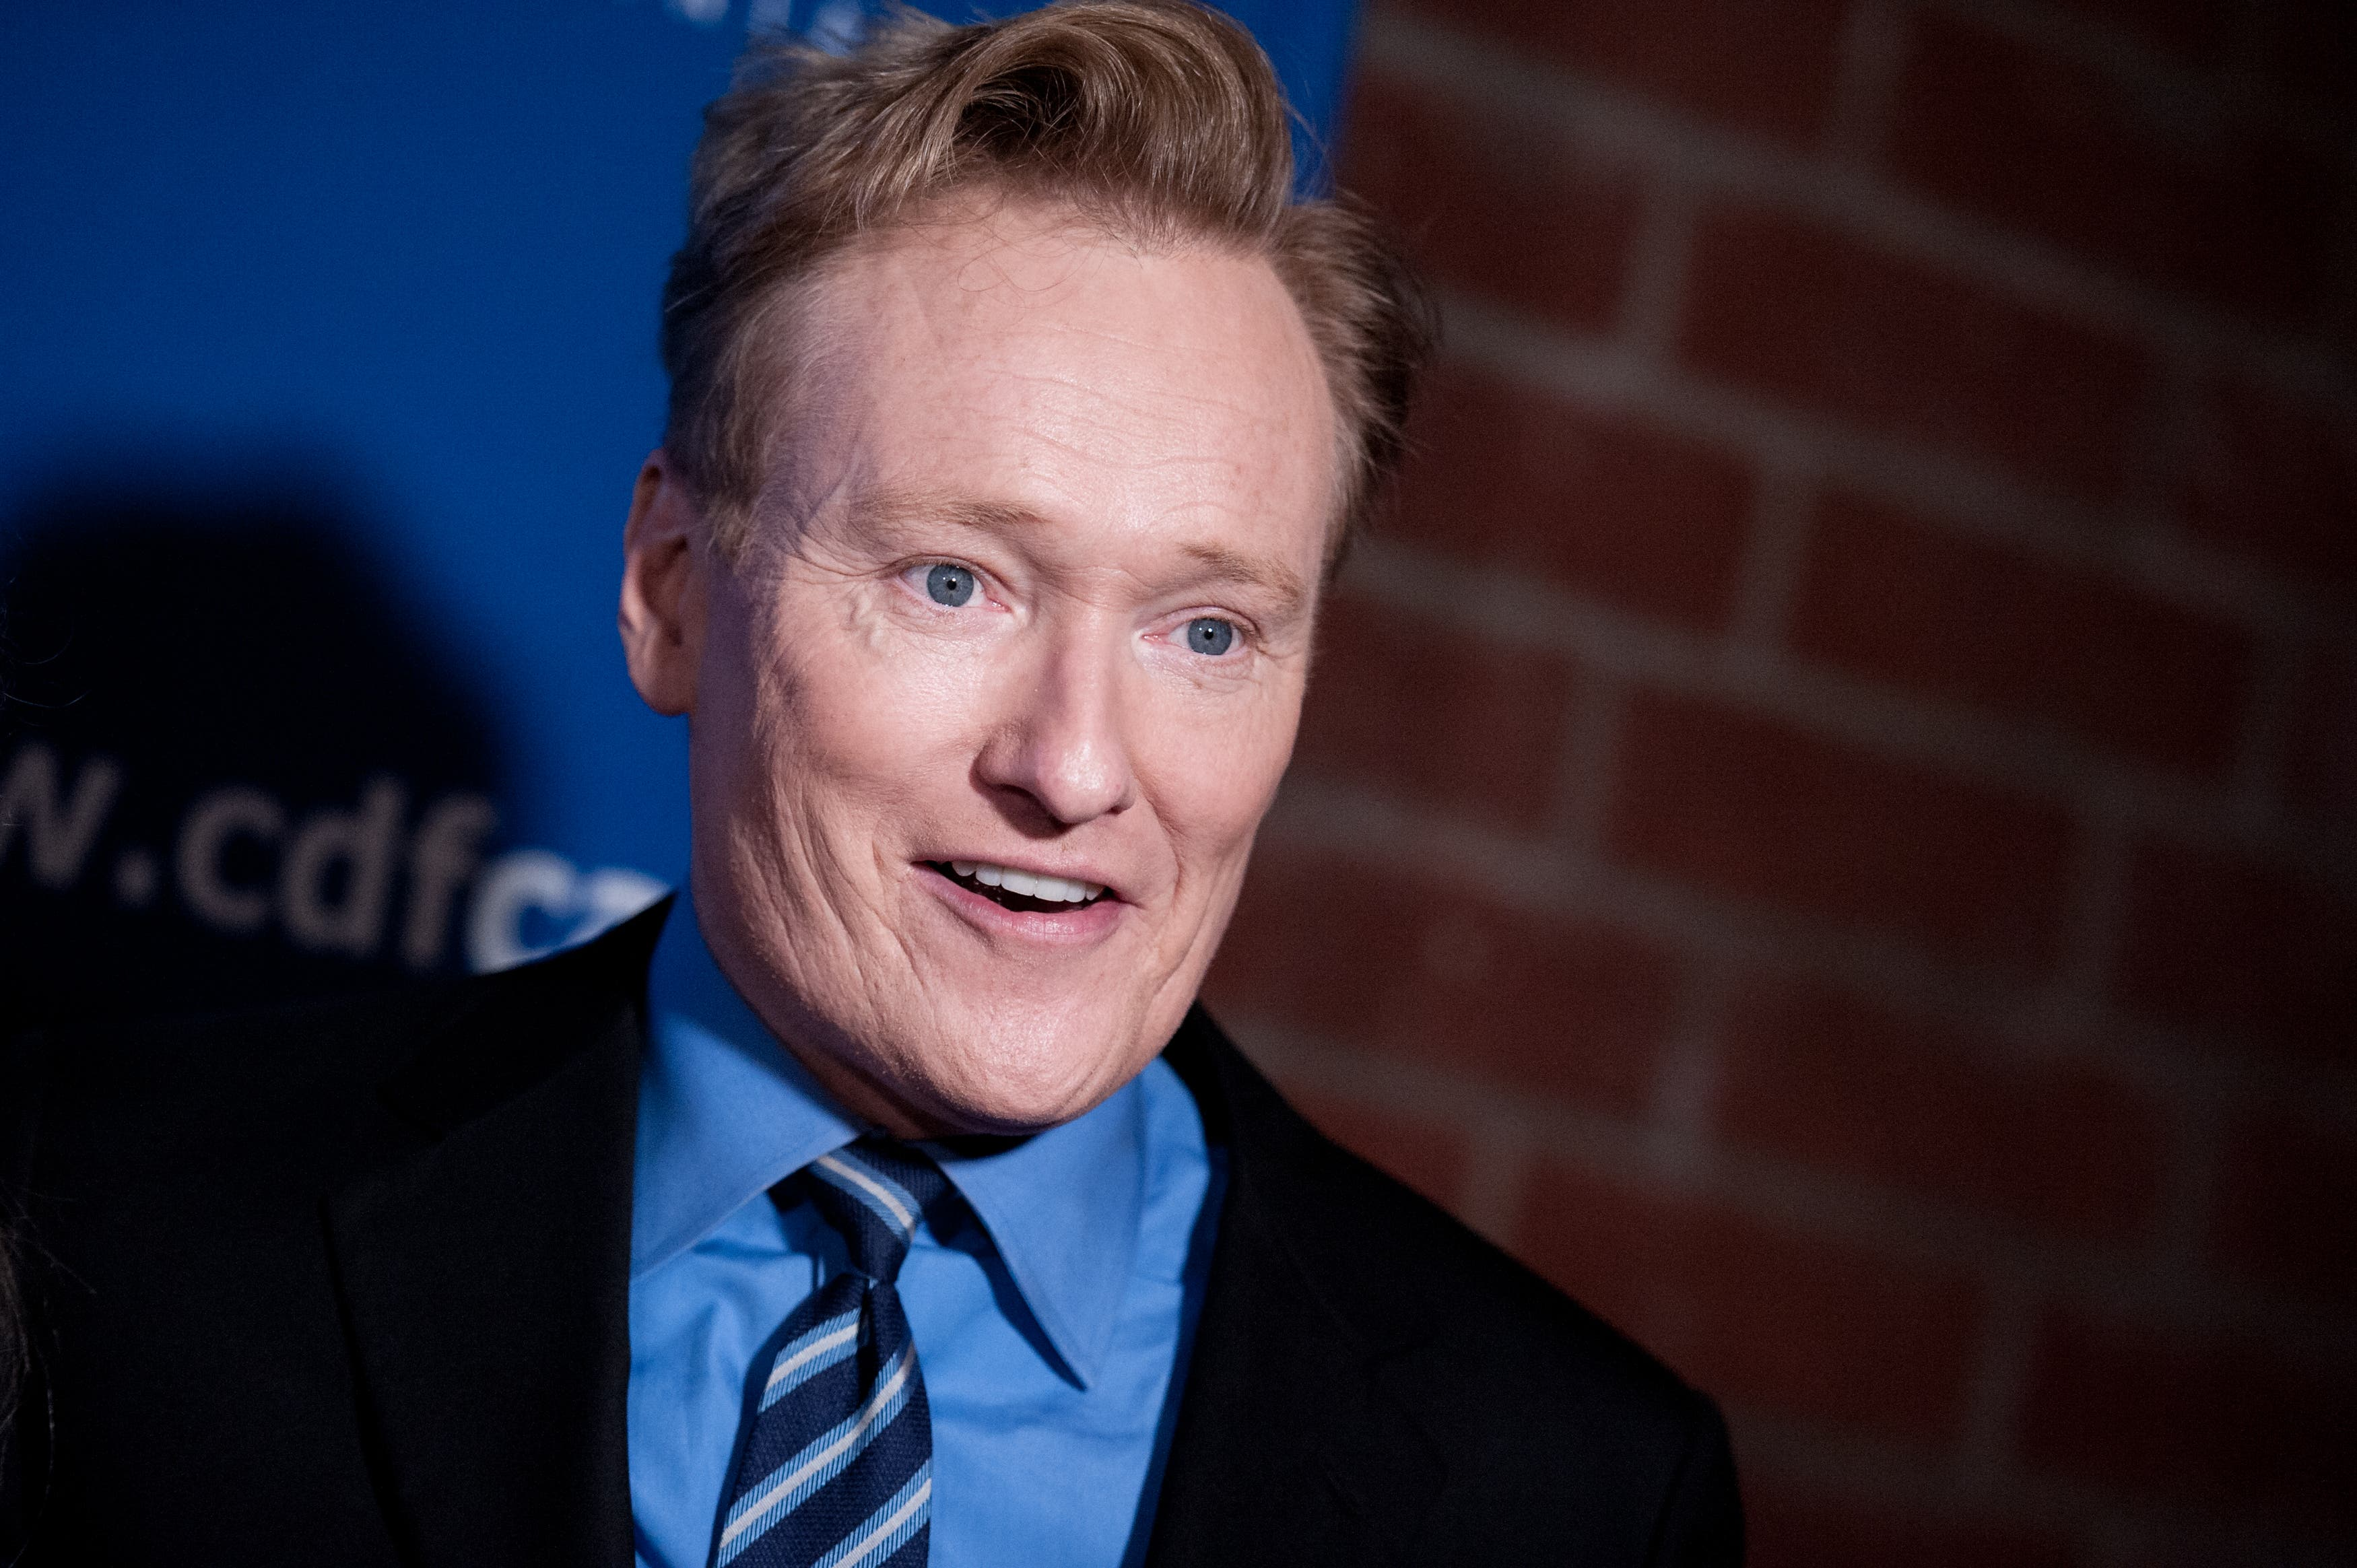 Conan O'Brien arrives at the 24th Annual Beat The Odds Awards on Thursday, Dec. 04, 2014, in Culver City, Calif. (File photo: AP)